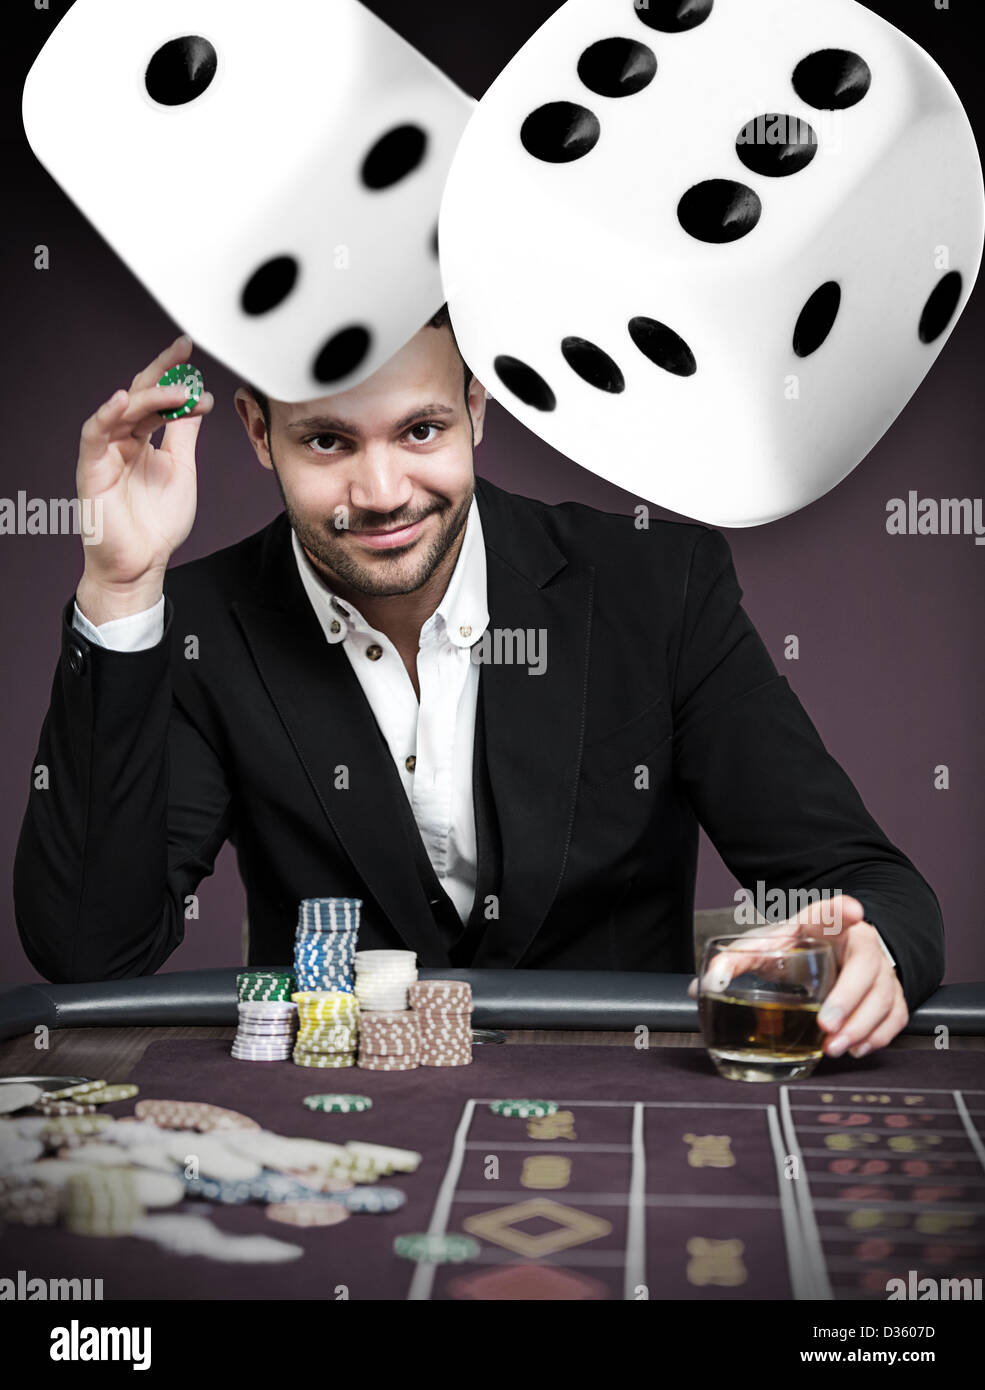 Handsome gambler with digital dice - Stock Image